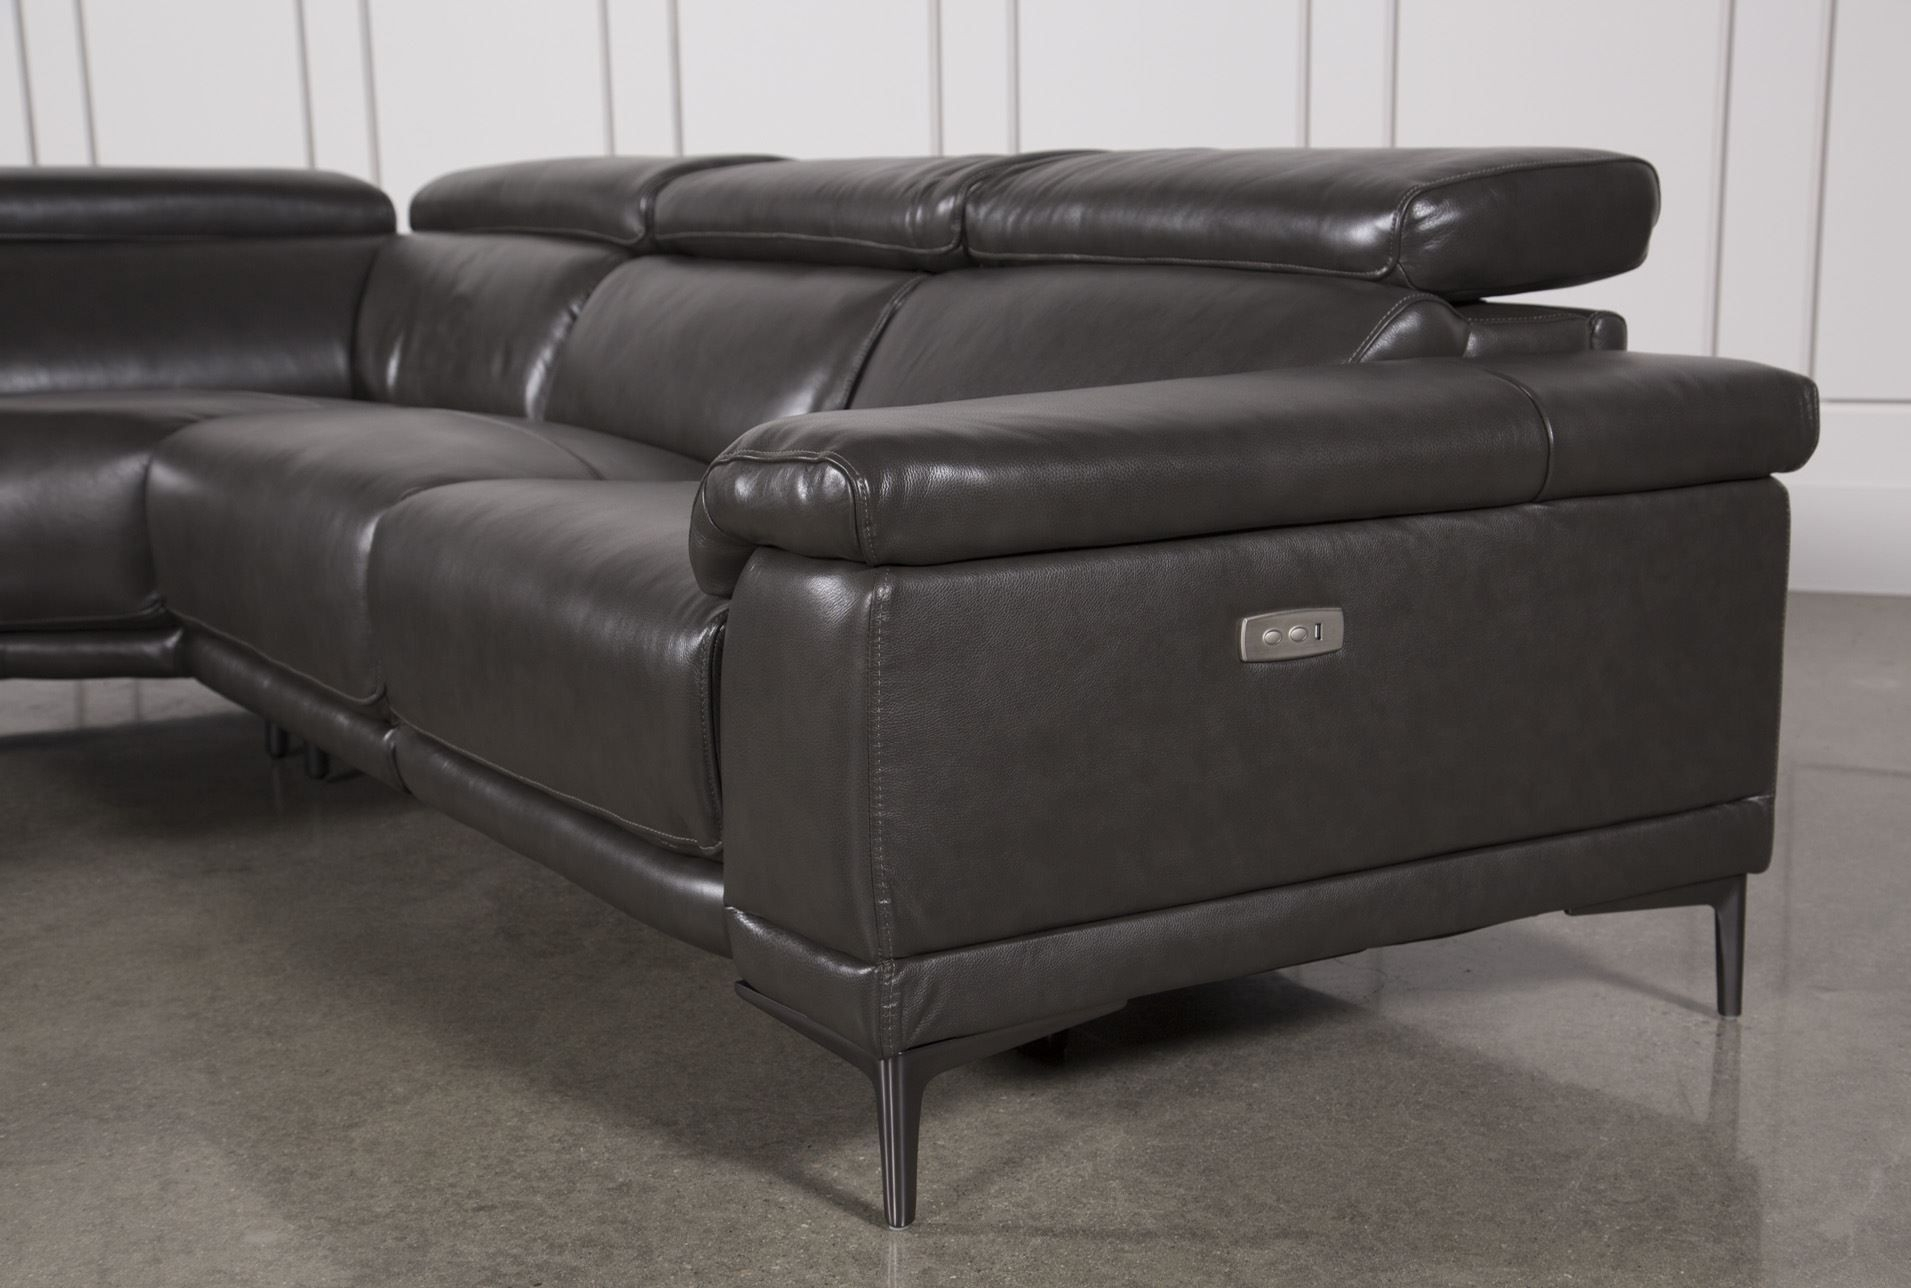 Charcoal Grey Leather Sofa Inspirational Sofa Navy Blue Leather Sofa With Tatum Dark Grey 2 Piece Sectionals With Raf Chaise (Image 2 of 25)